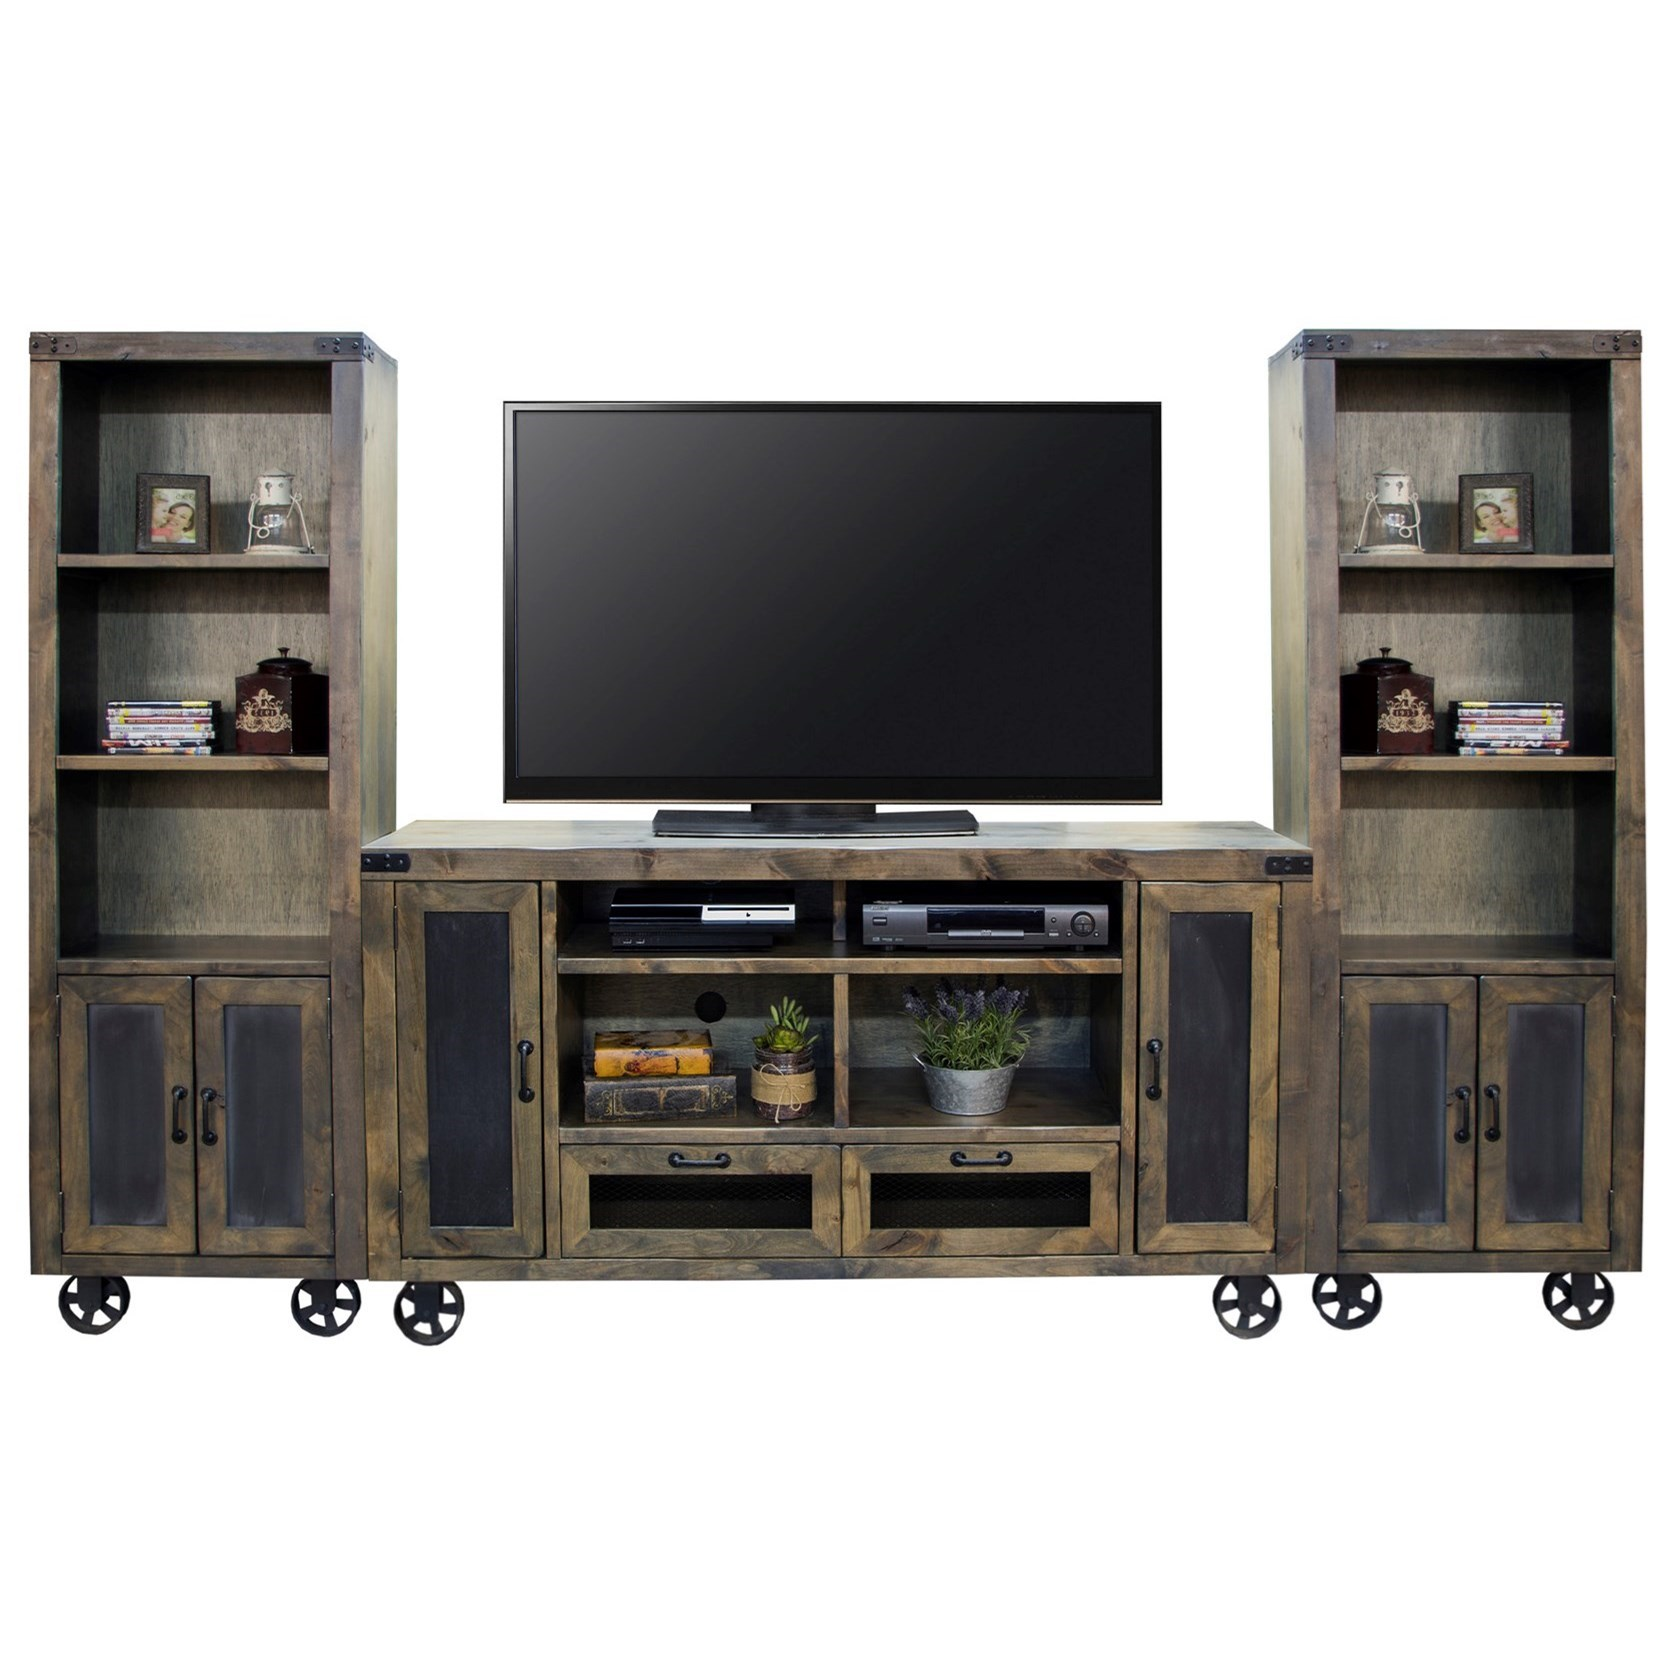 Legends Furniture Cargo Entertainment Wall Console With Bottom Wheel